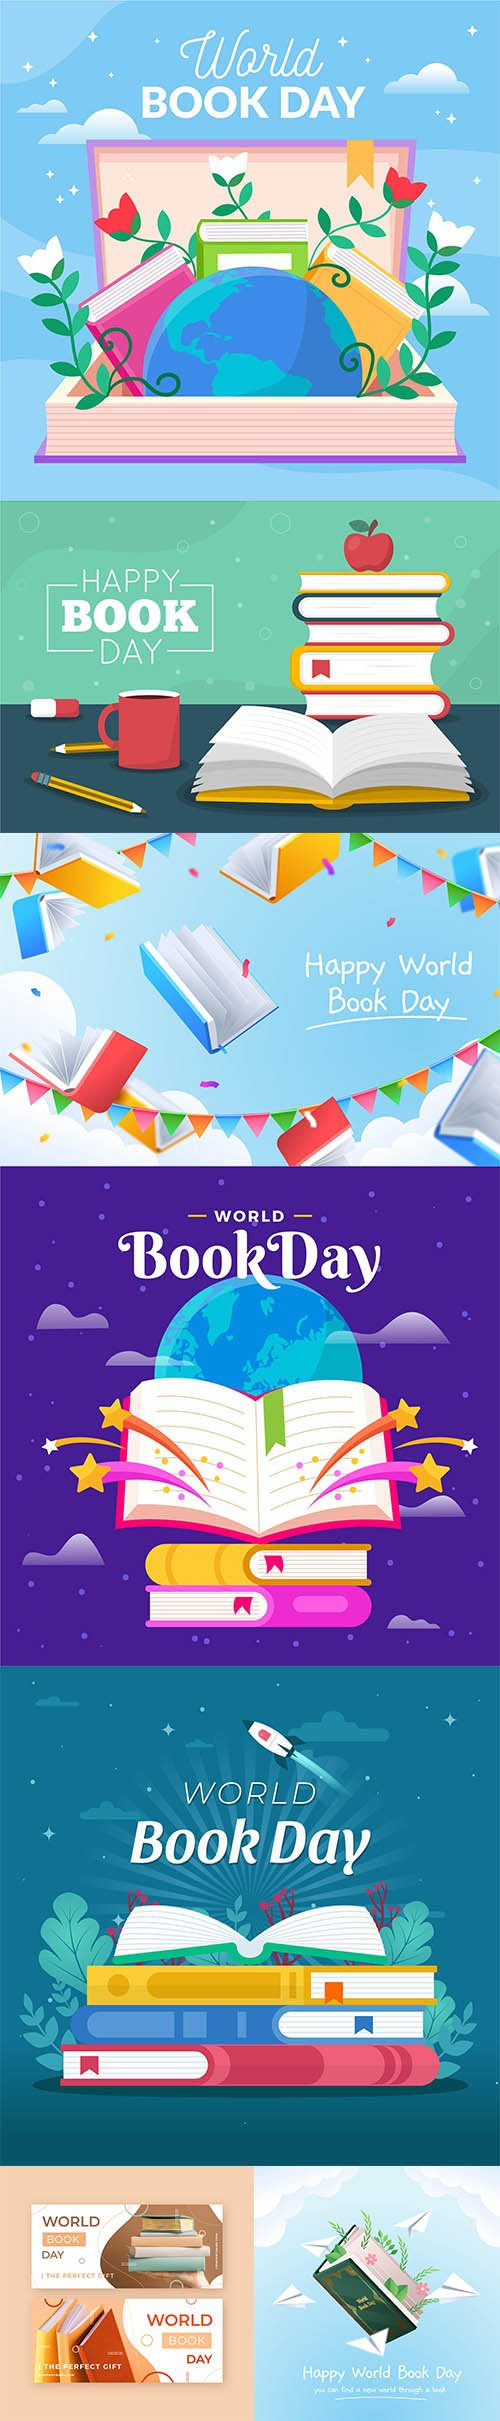 Flat world book day illustrations set